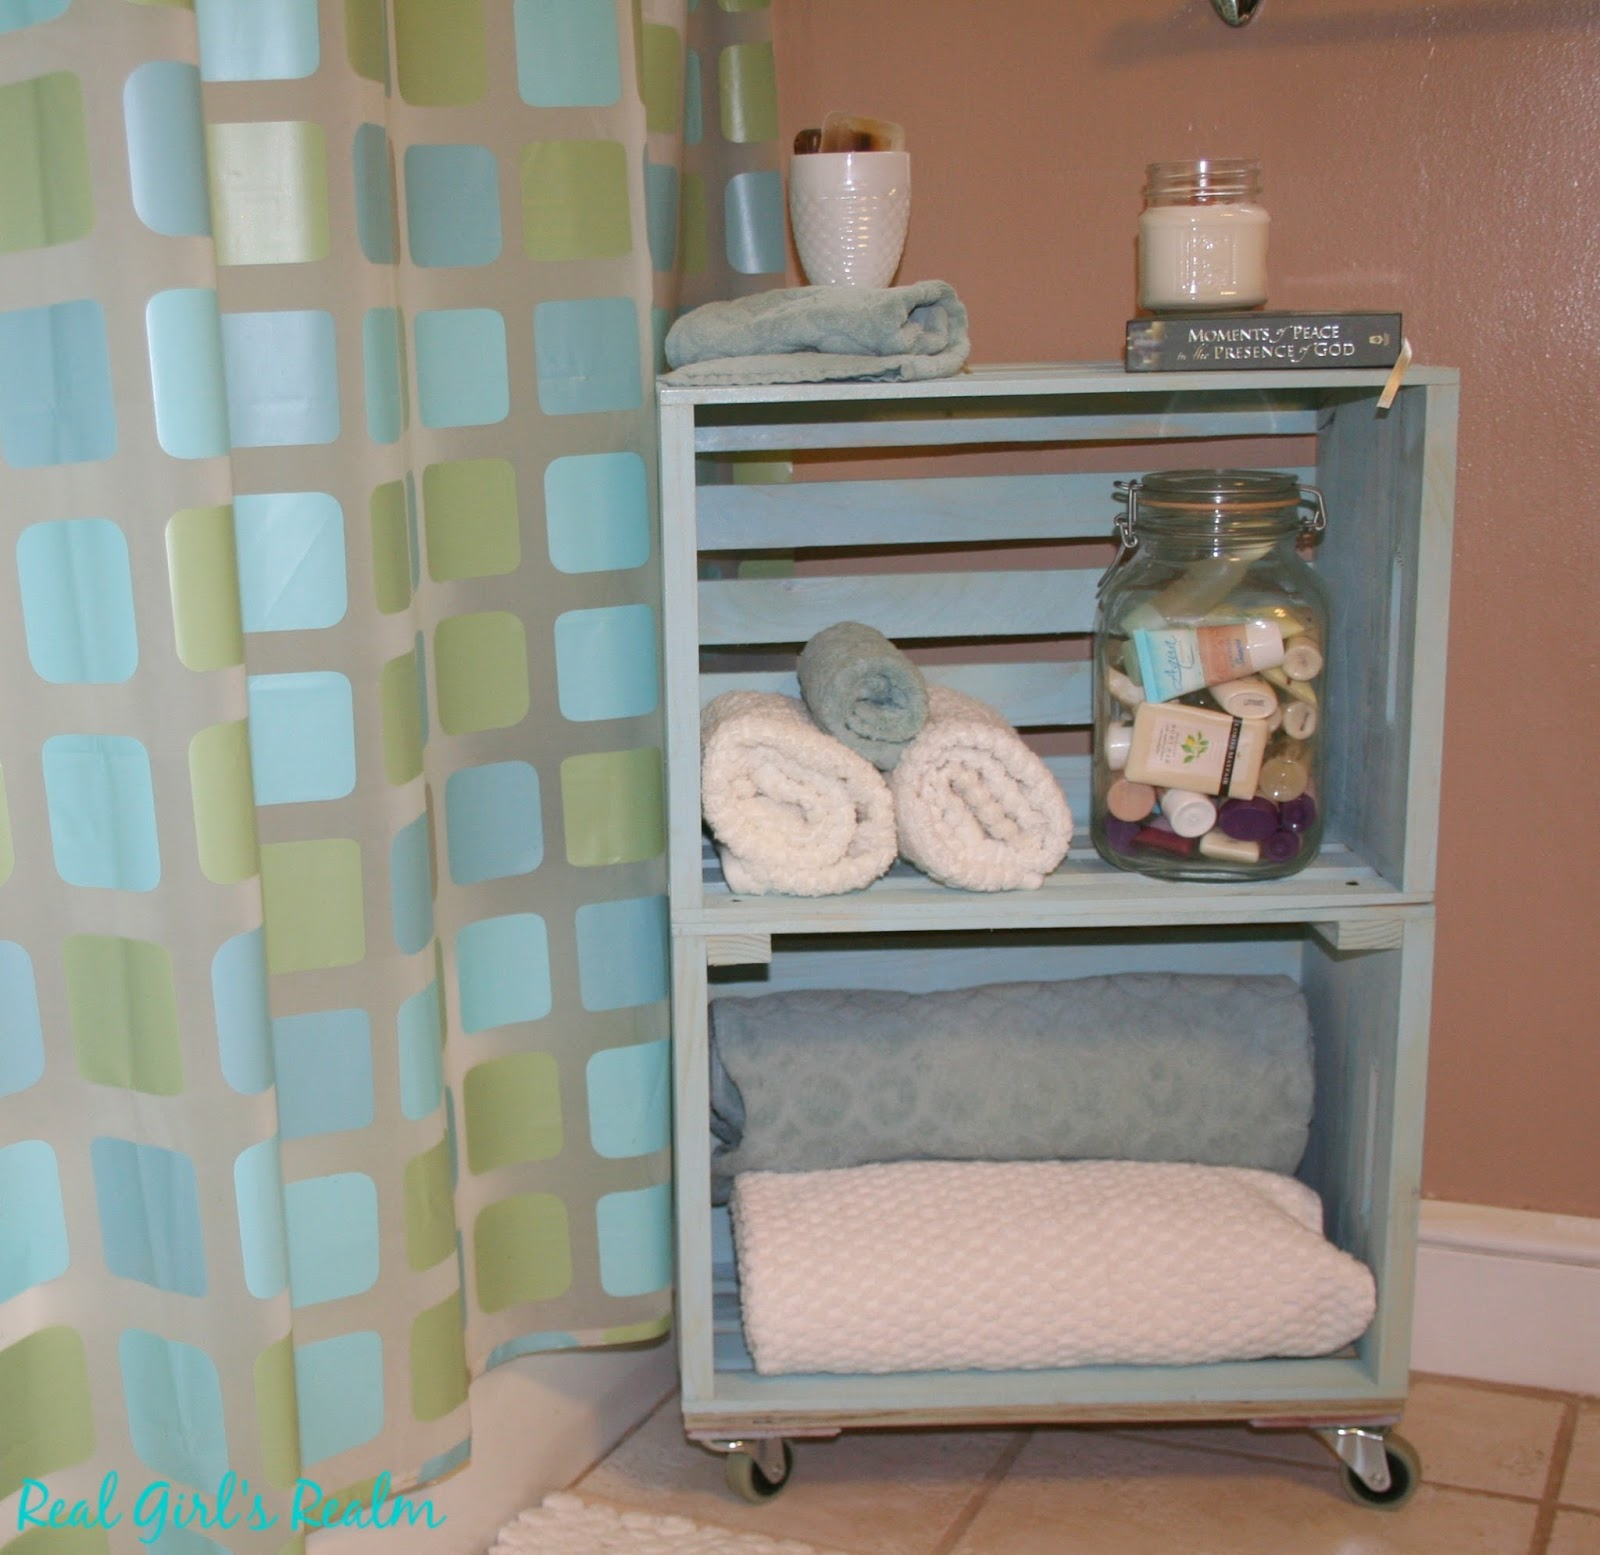 Real Girl\'s Realm: Budget Friendly Bathroom Organization Ideas